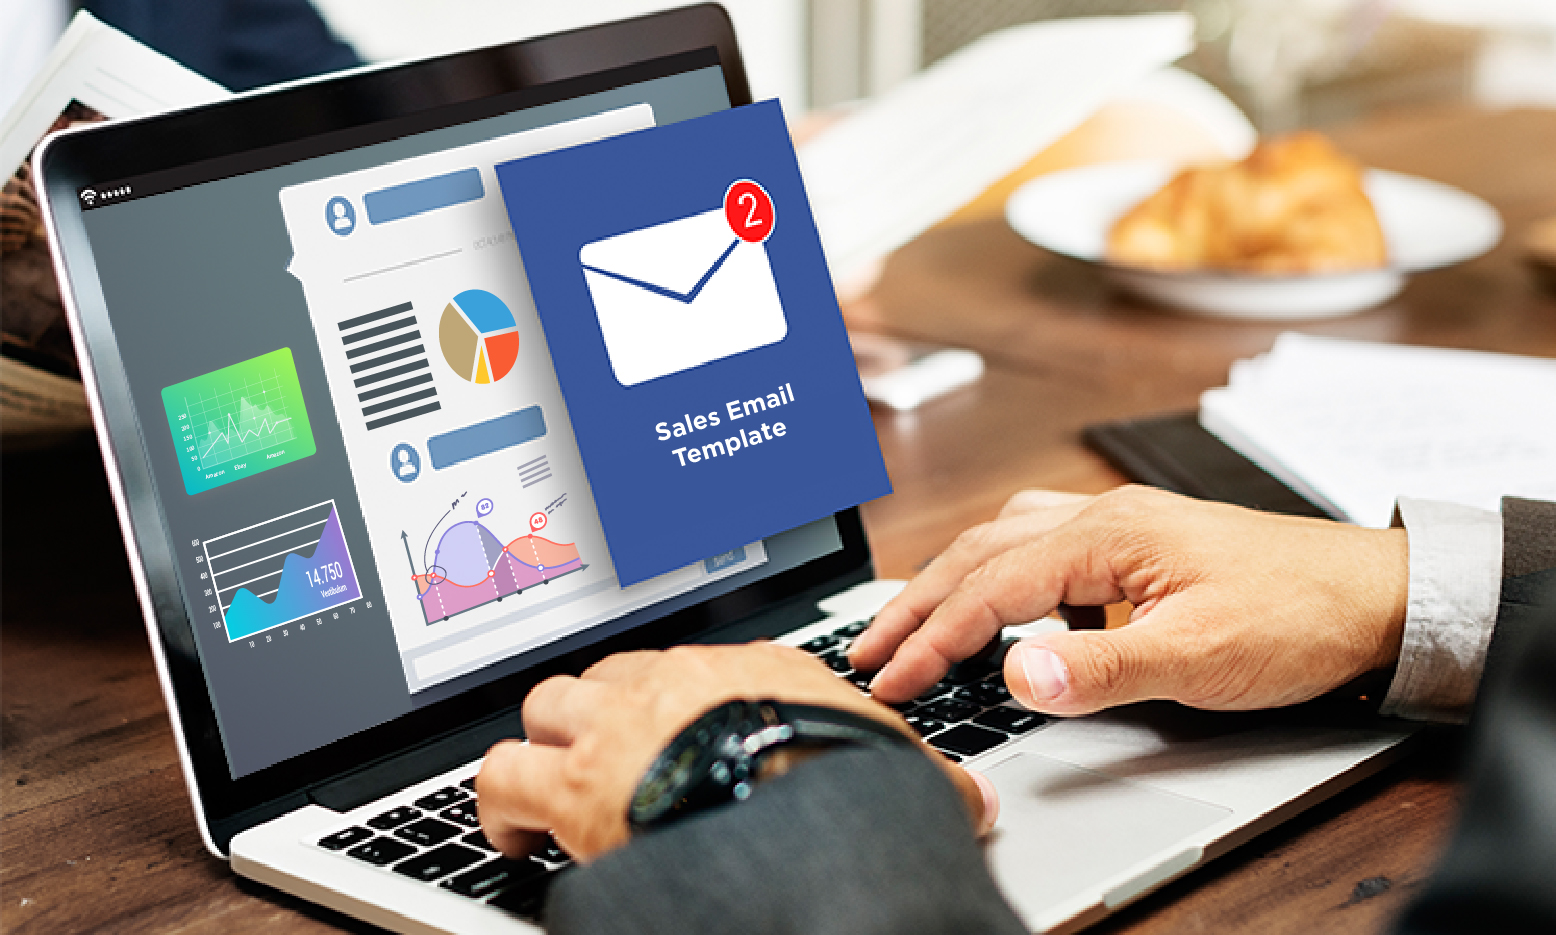 How to leverage sales email templates to close more deals